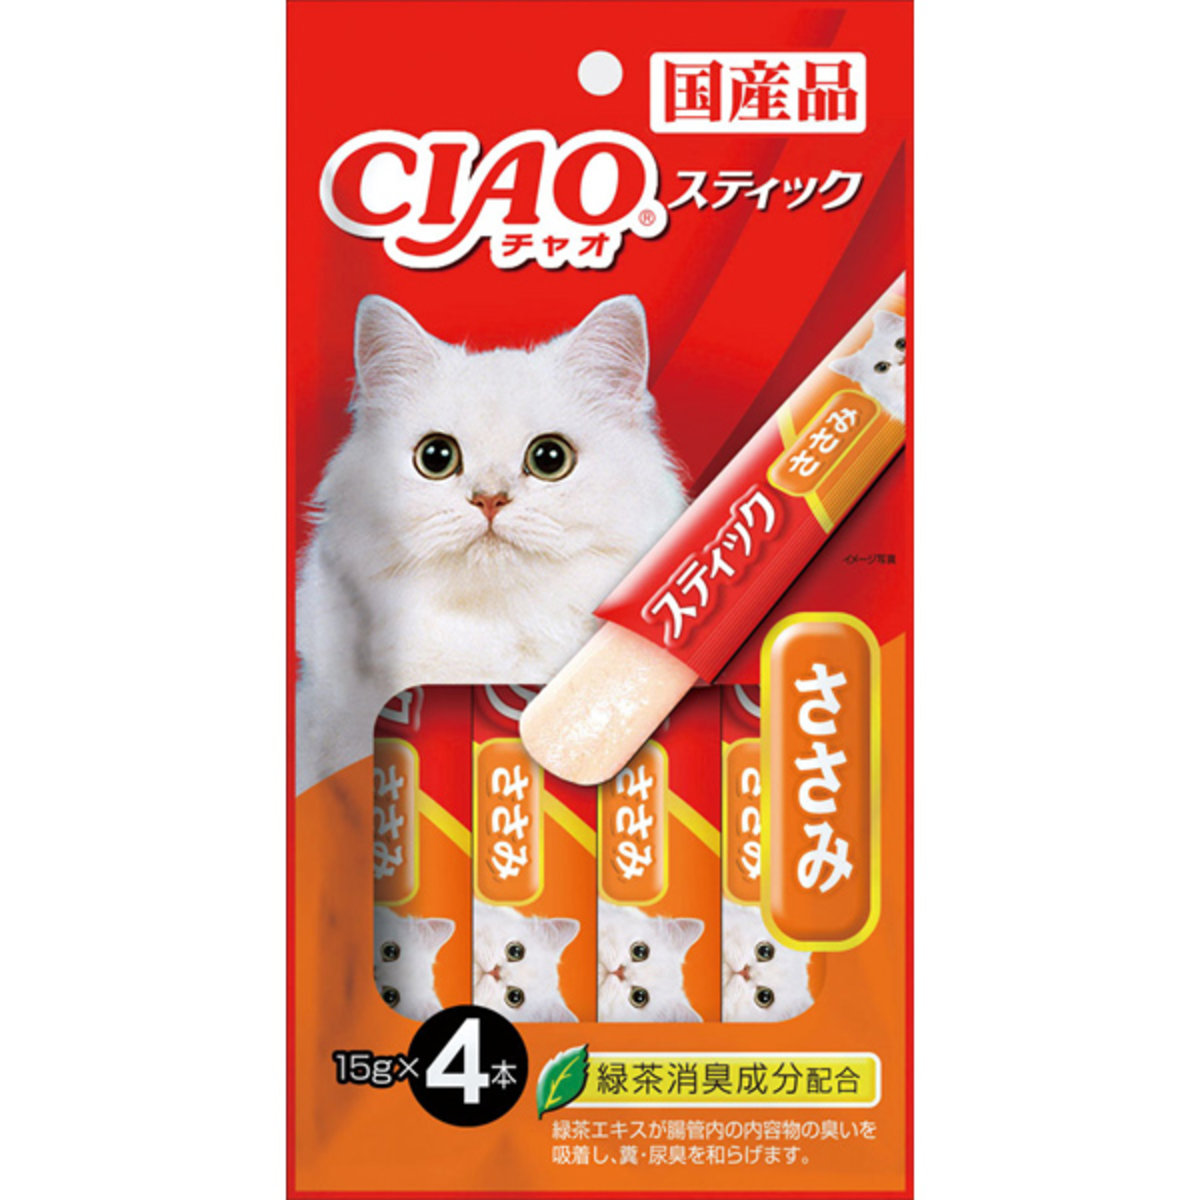 INABA Chicken & Scallops Jelly Stick with Green Tea 4SC-83 (45308) (Import from Japan)